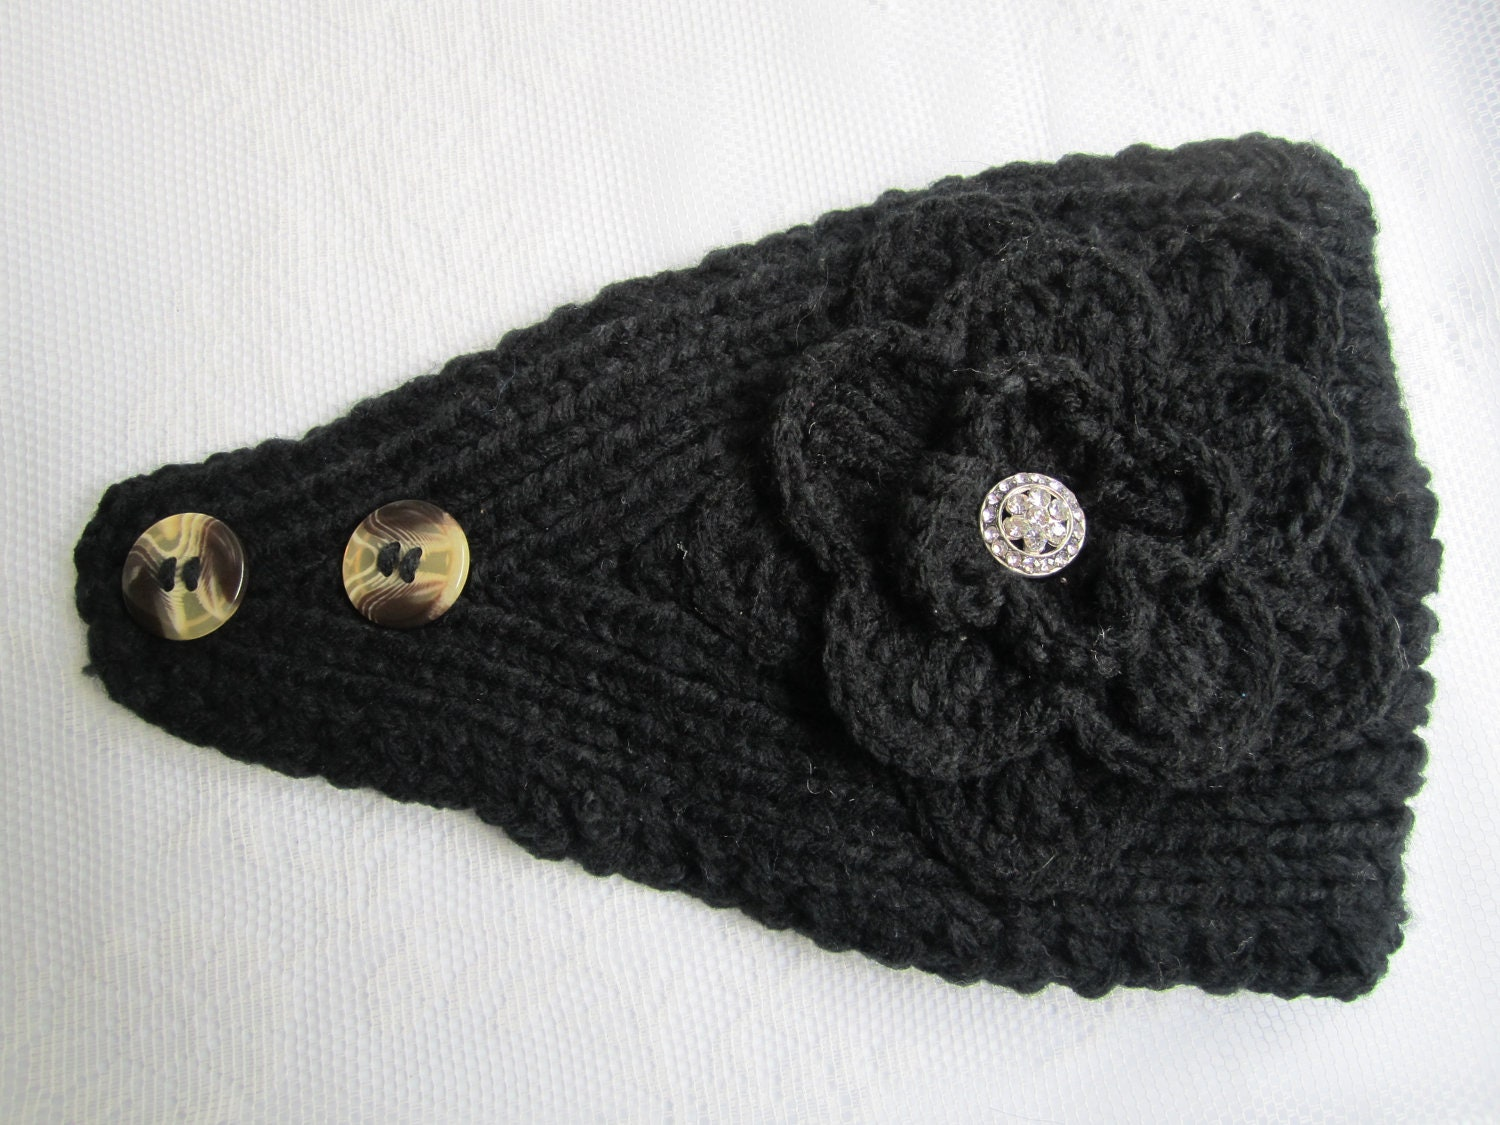 Free Crochet Pattern Headband Ear Warmer Button : Black Knit Headband Ear Warmer with Crochet Flower and